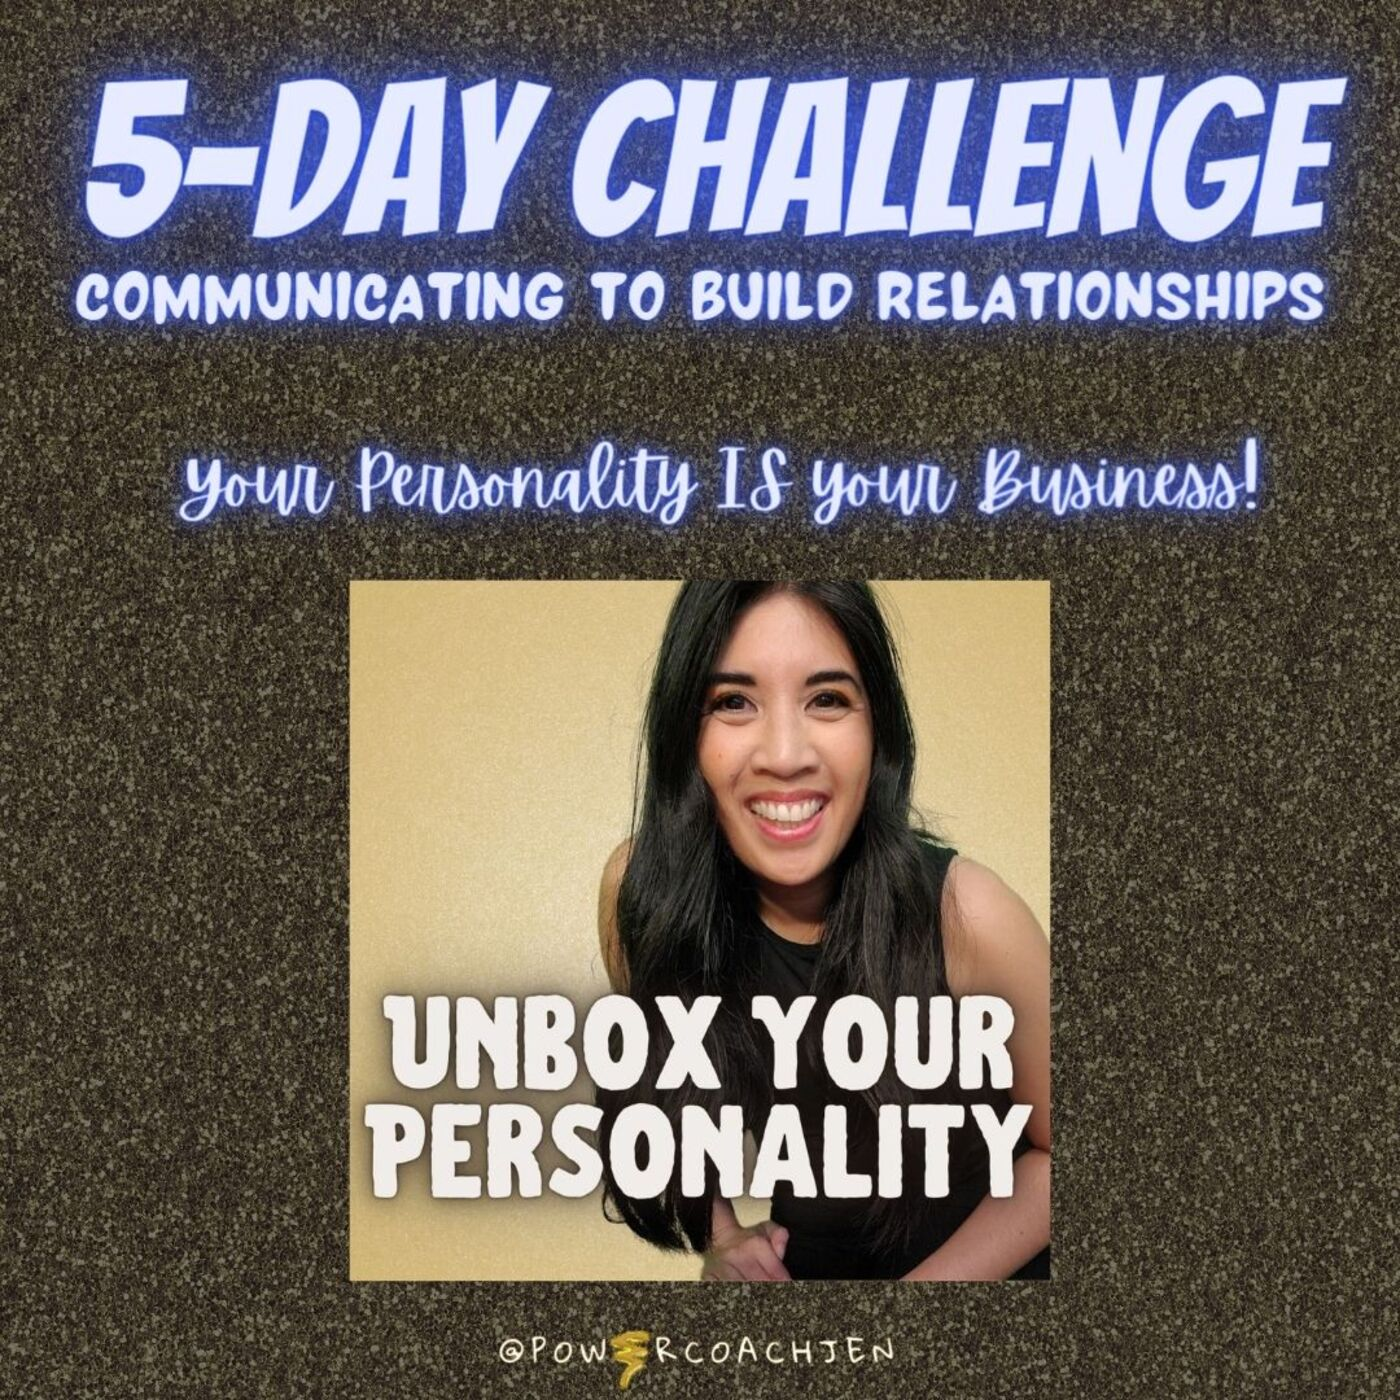 Challenge - Step 4 - How to get their Undivided Attention